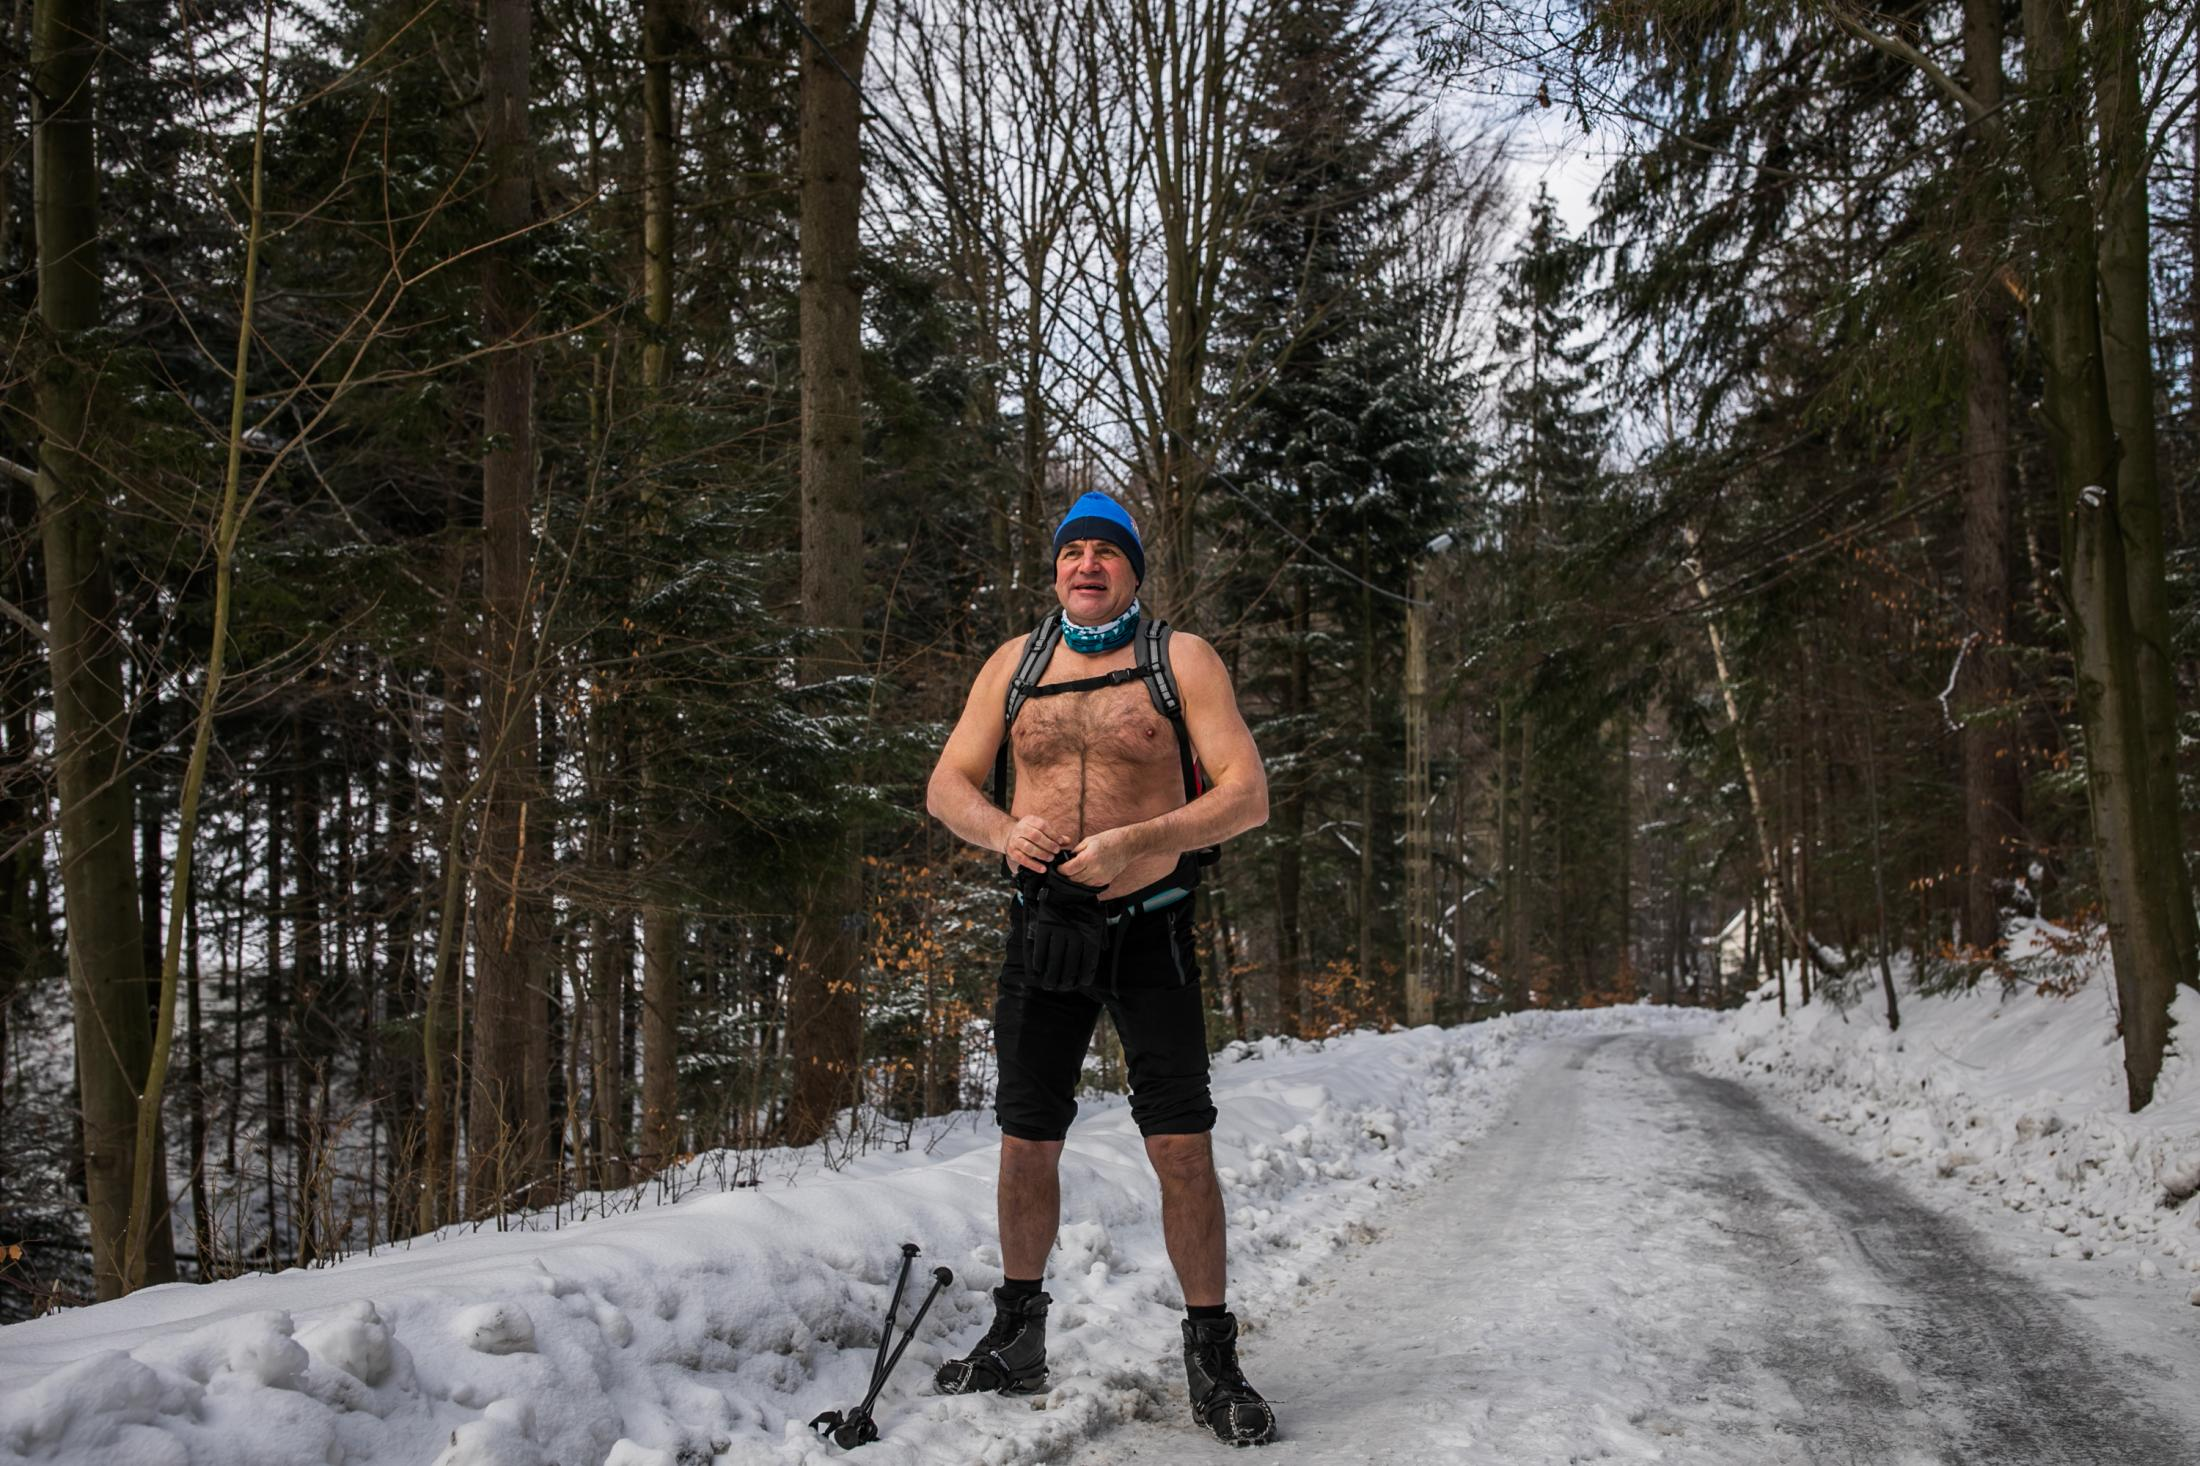 31.01.2021 Szczyrk, Poland. Andrzej Ryrych, he had just taken off his shirt.